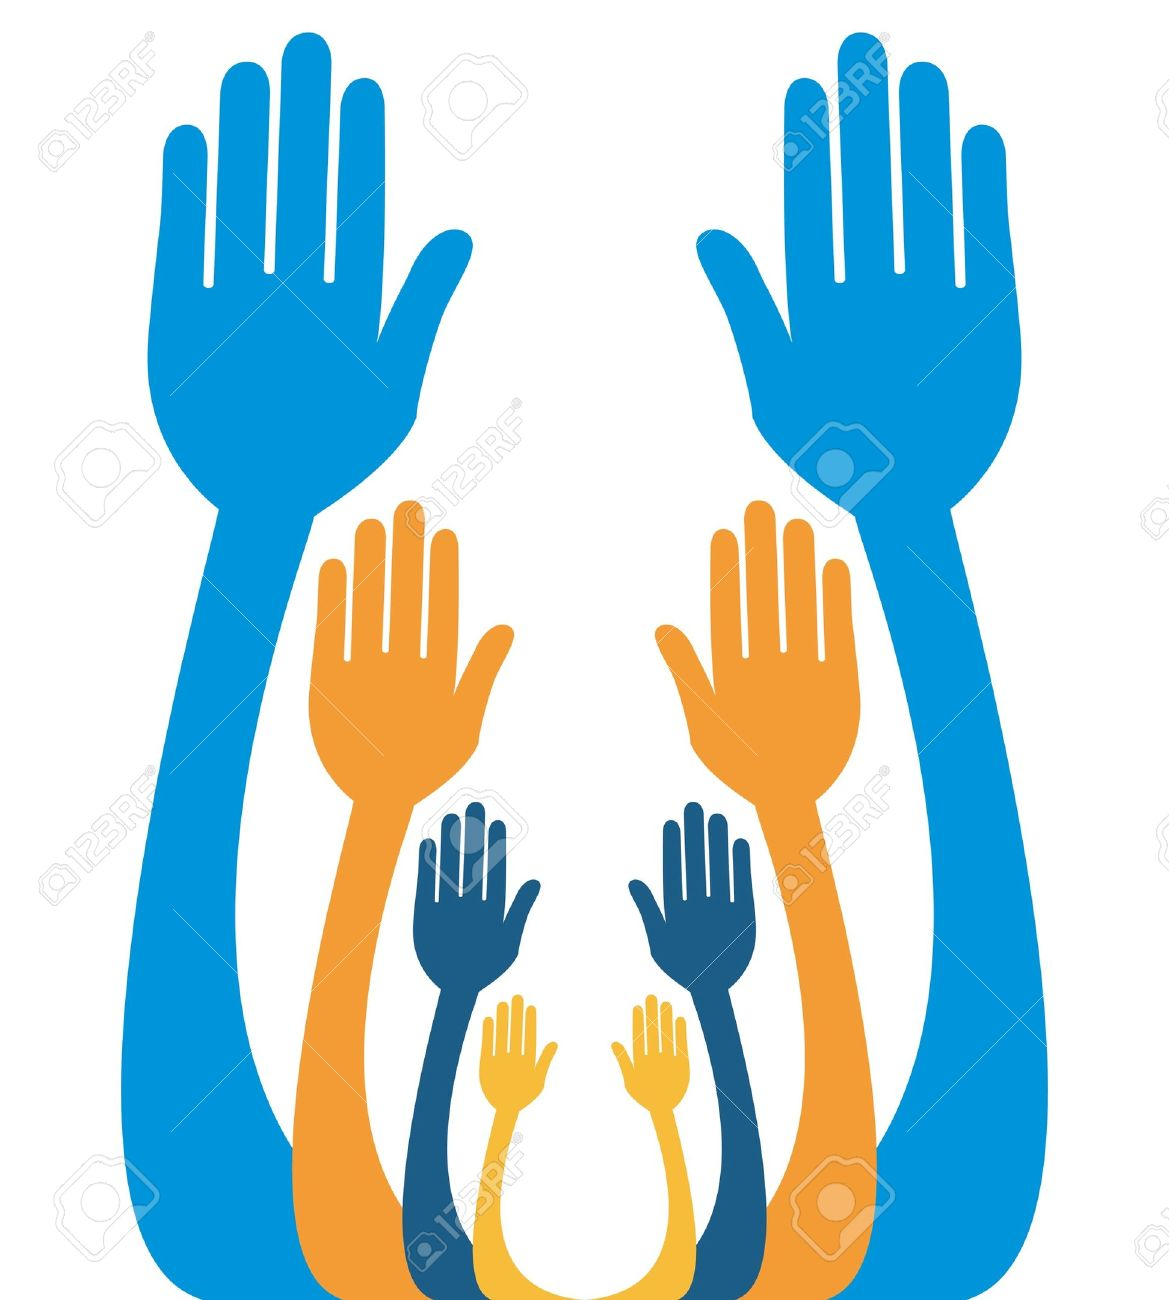 Hands Reaching Out Together Vector Design. Royalty Free Cliparts.